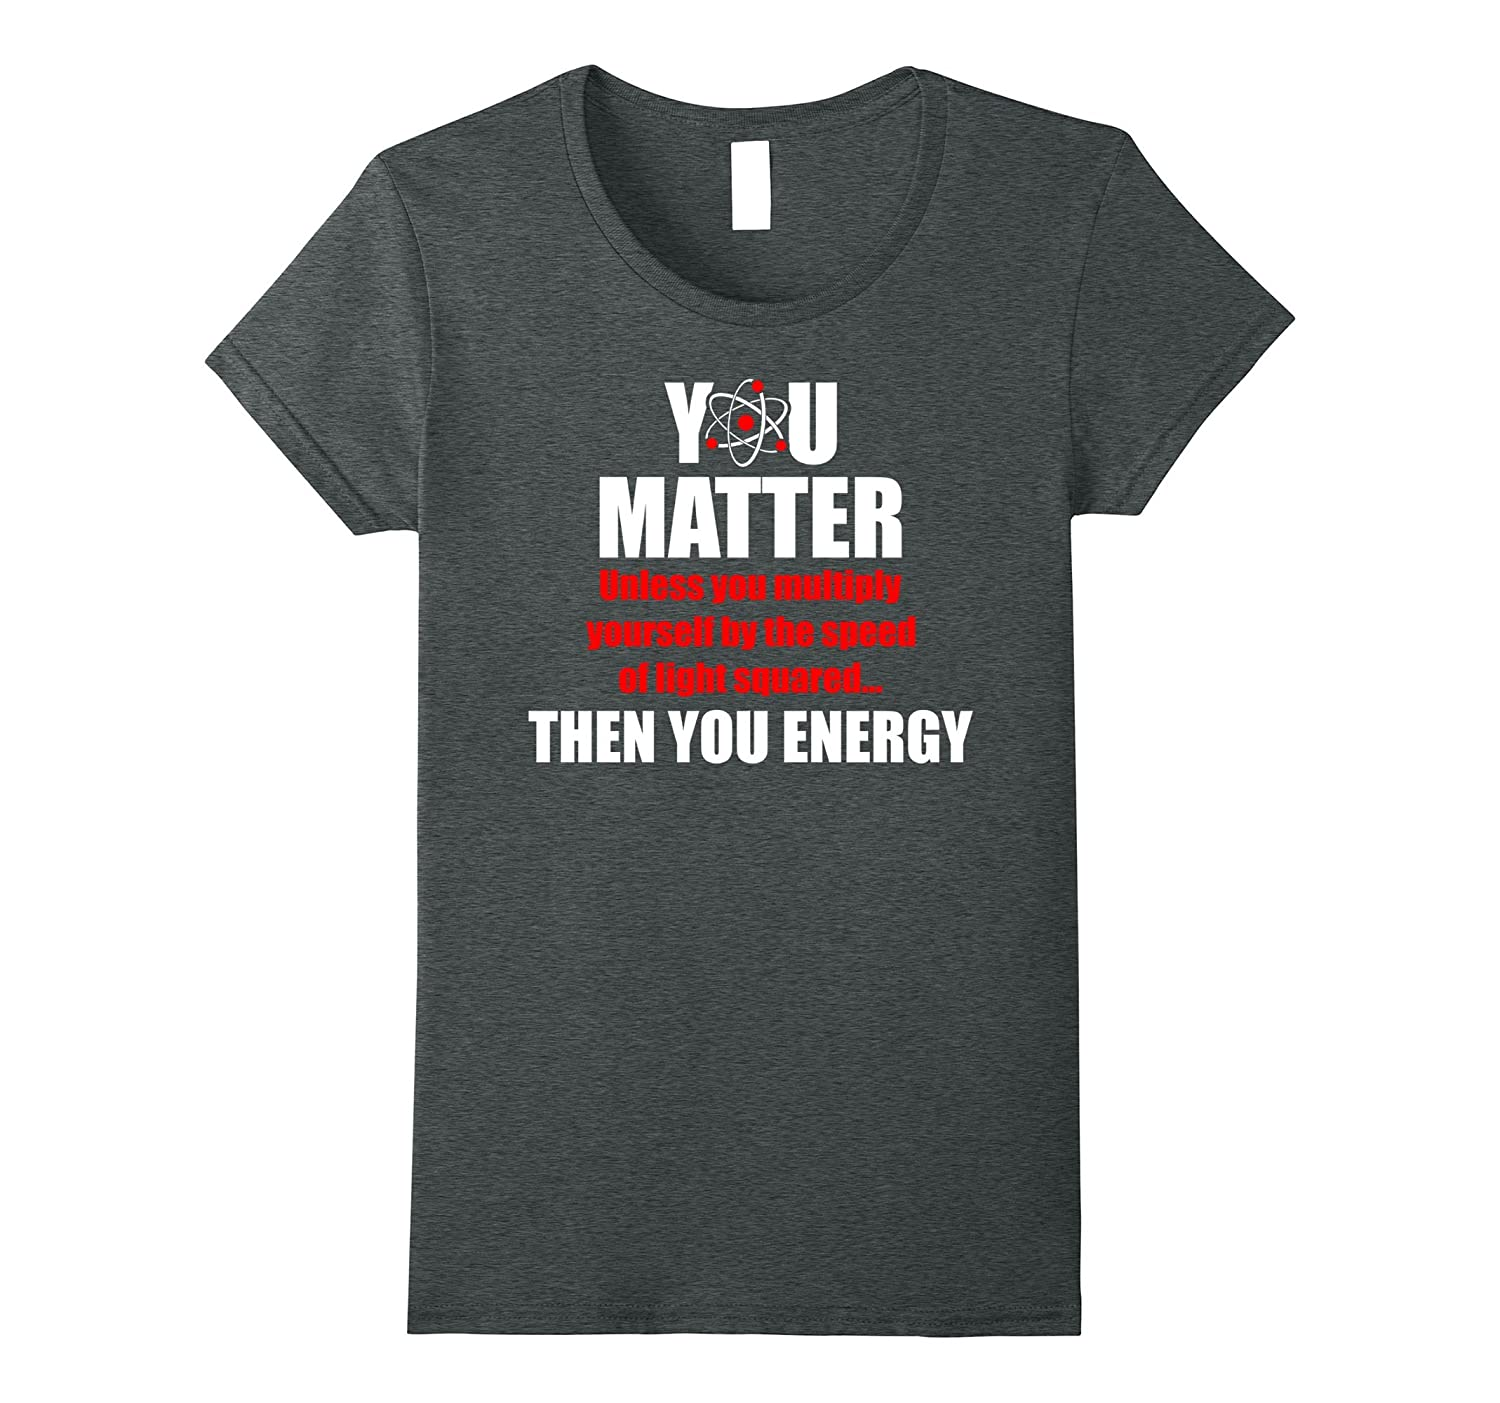 You Matter Then You Energy Funny Science Physics T-Shirt